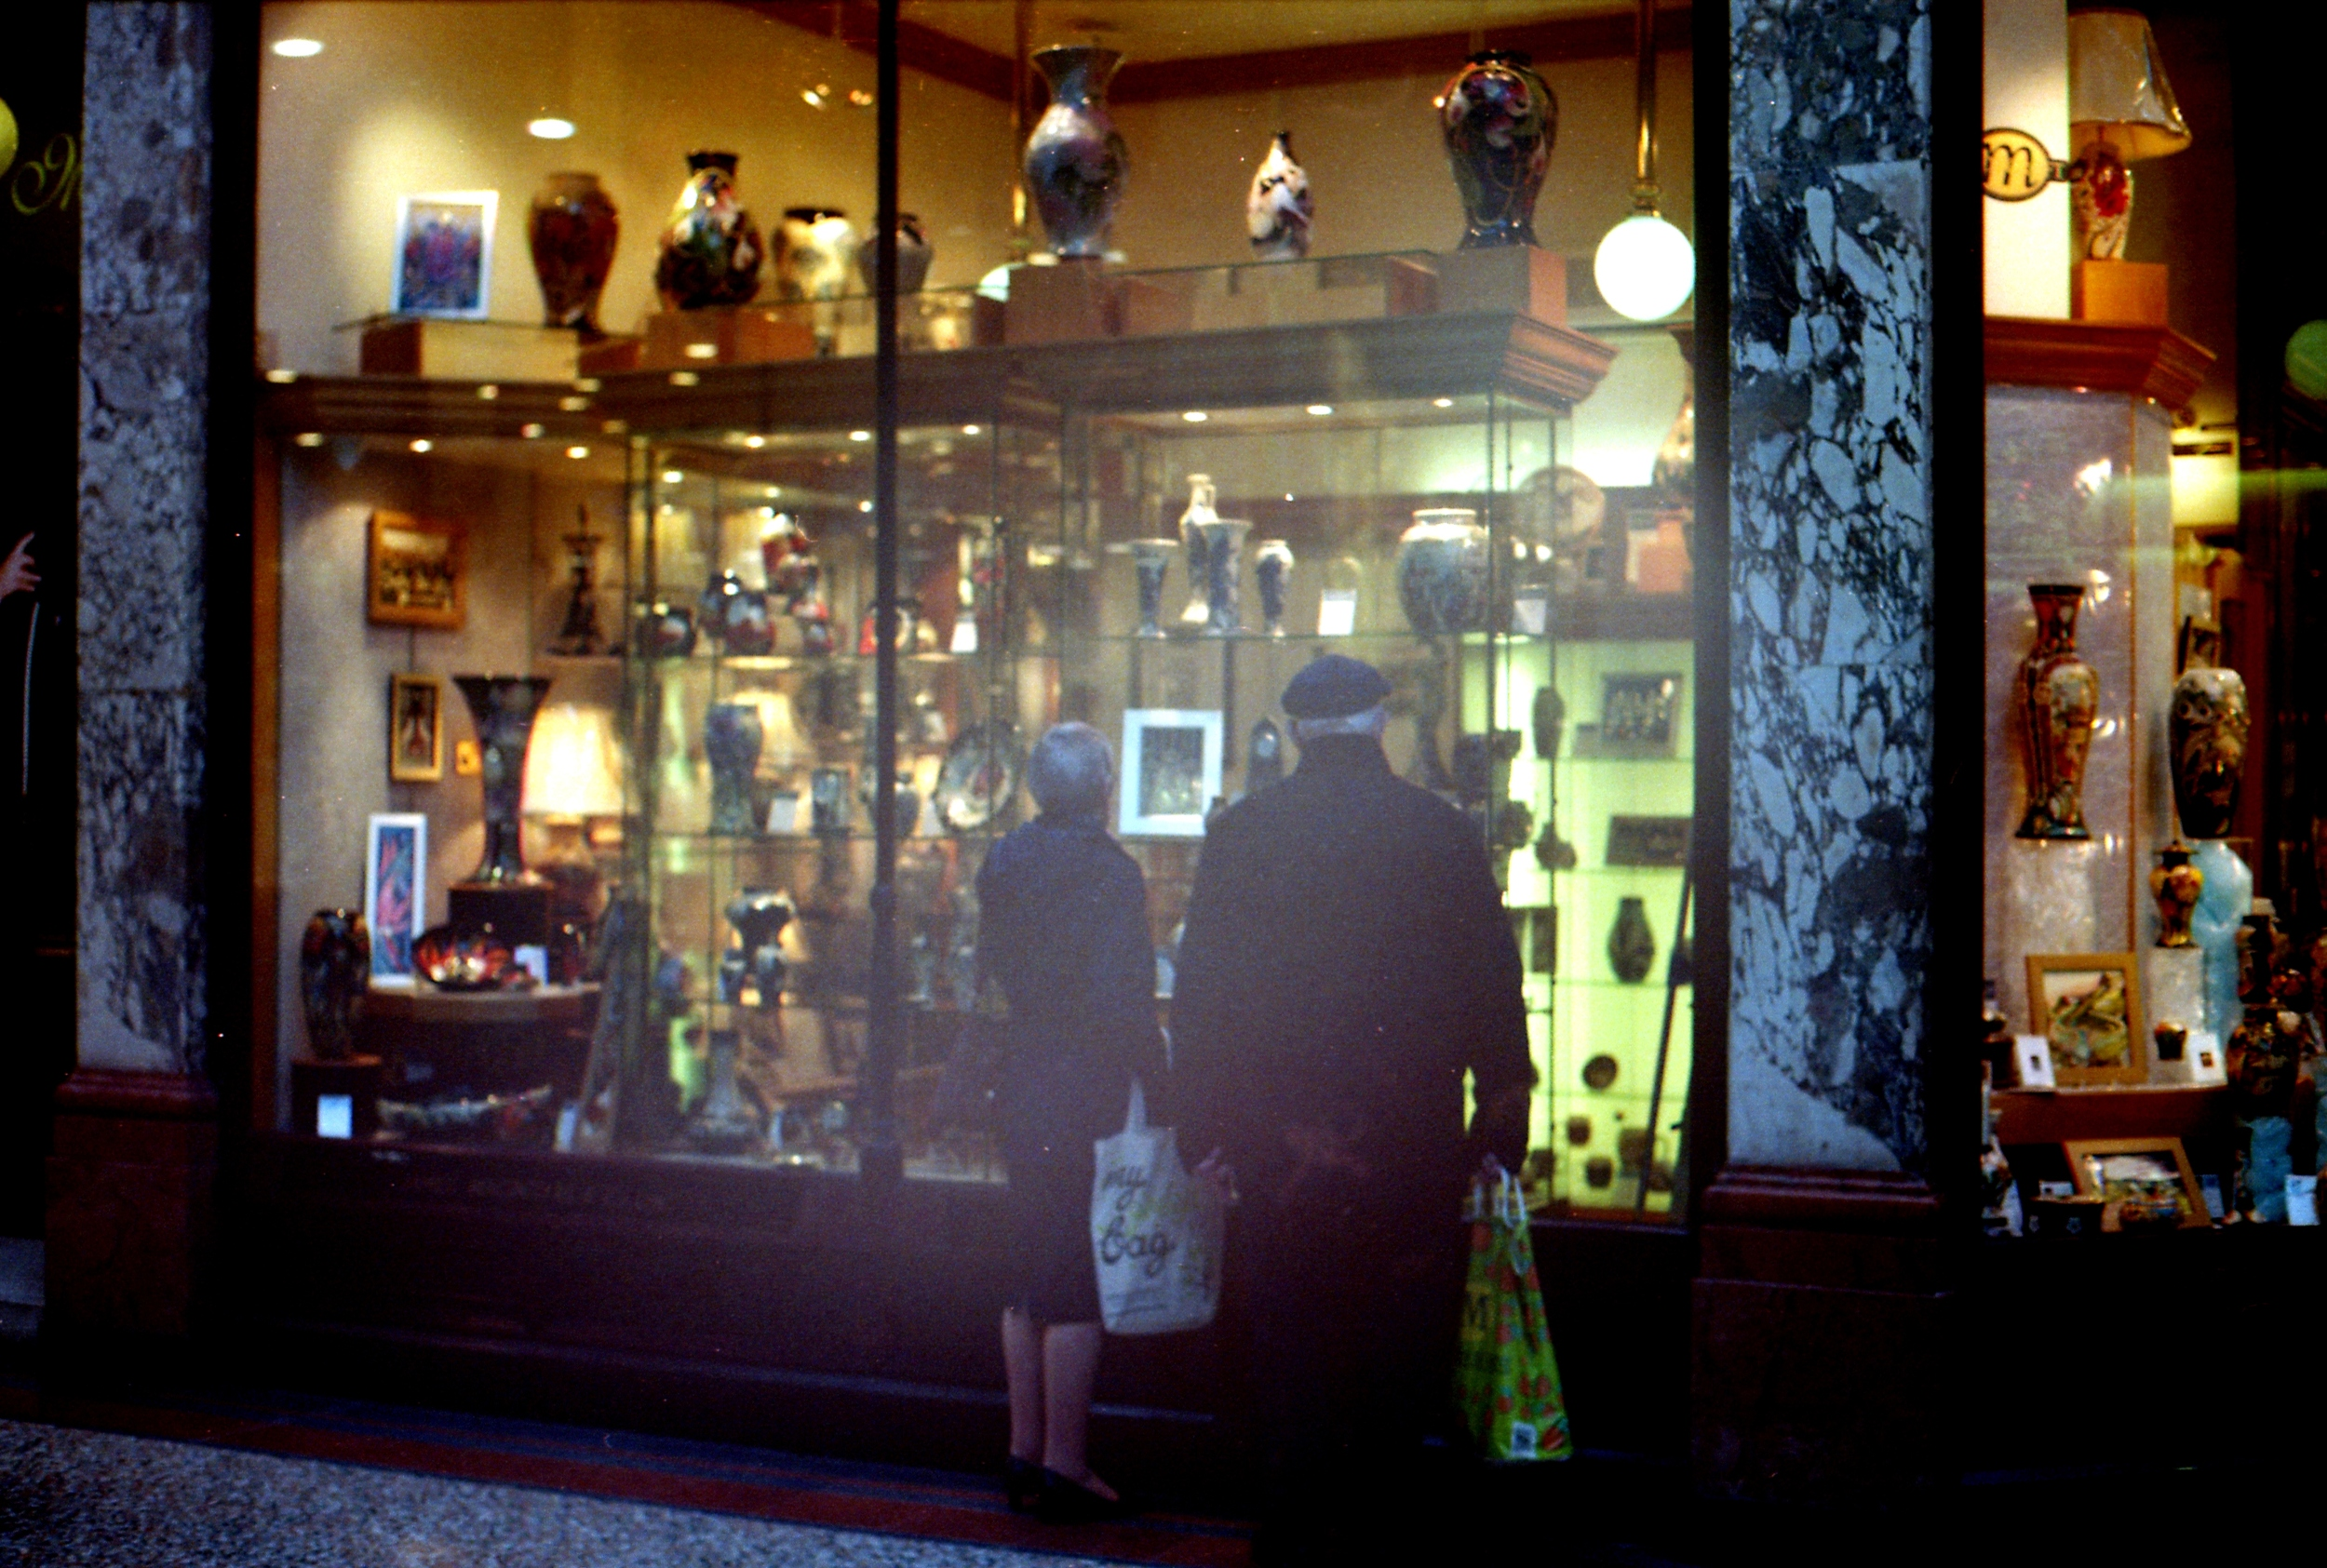 41/366 - Window shopping. I look in this shop window a lot too but it is £££. One day maybe... If I win the lottery haha